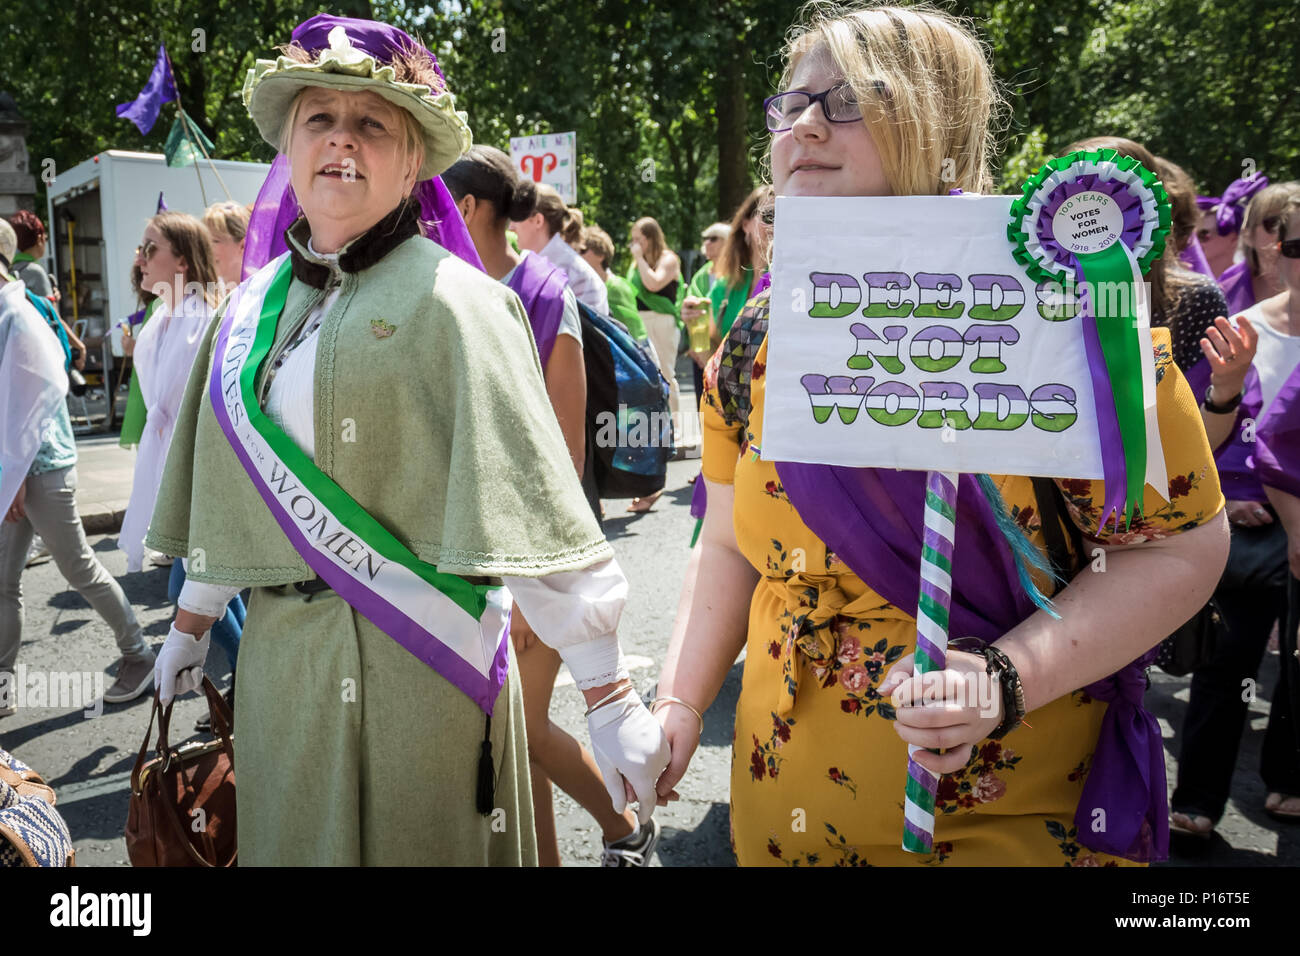 London, UK. 10th June 2018. Thousands of women join Processions 2018. Dressing in the green, white and purple tri-colour scheme of the Suffragette's Women's Social and Political Union, they marched from Hyde Park to Parliament Square to mark 100 years since the Representation of the People Act, which gave British women the right to vote and stand for public office in the UK. Credit: Guy Corbishley/Alamy Live News Stock Photo